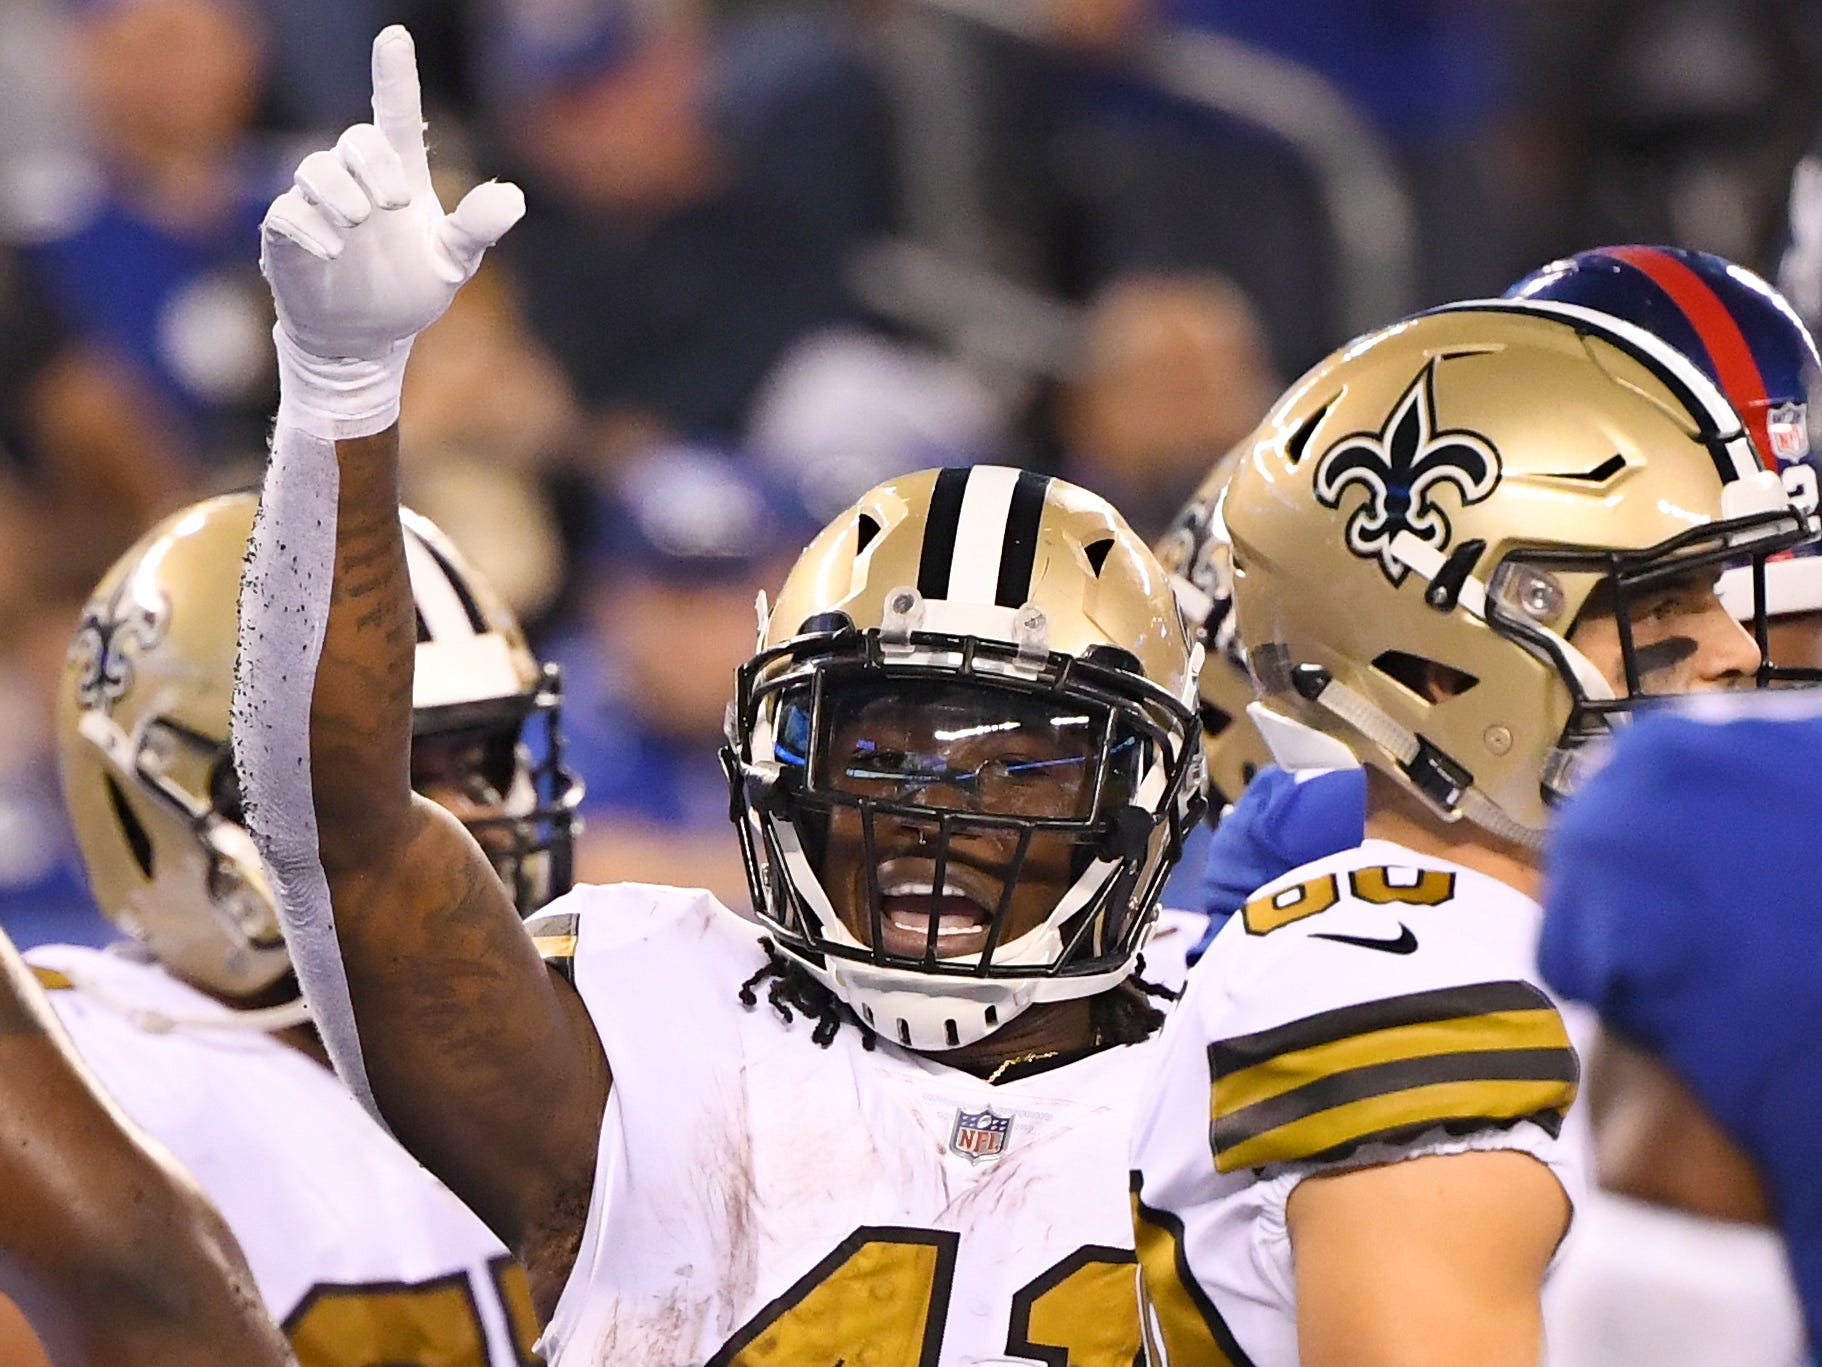 3. Saints (3): Their 3-1 start is best in five years, and things are only looking up with RB Mark Ingram set to rejoin buddy Alvin Kamara in backfield.